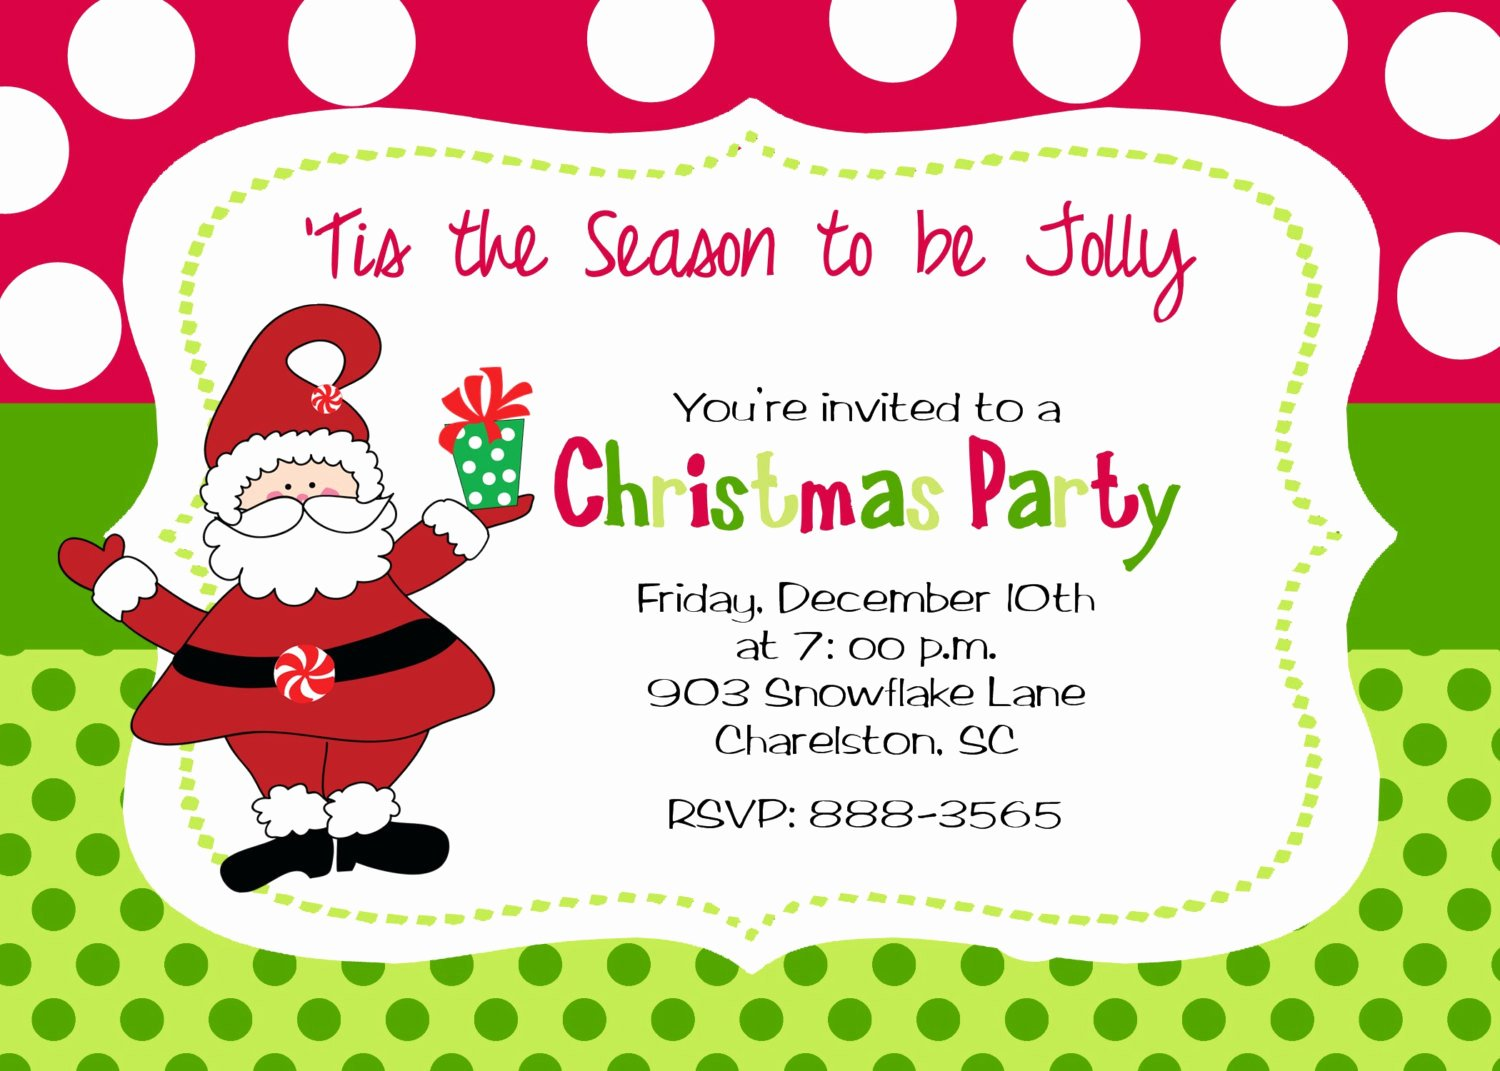 Christmas Party Invite Template Word Beautiful Christmas Party Invitation